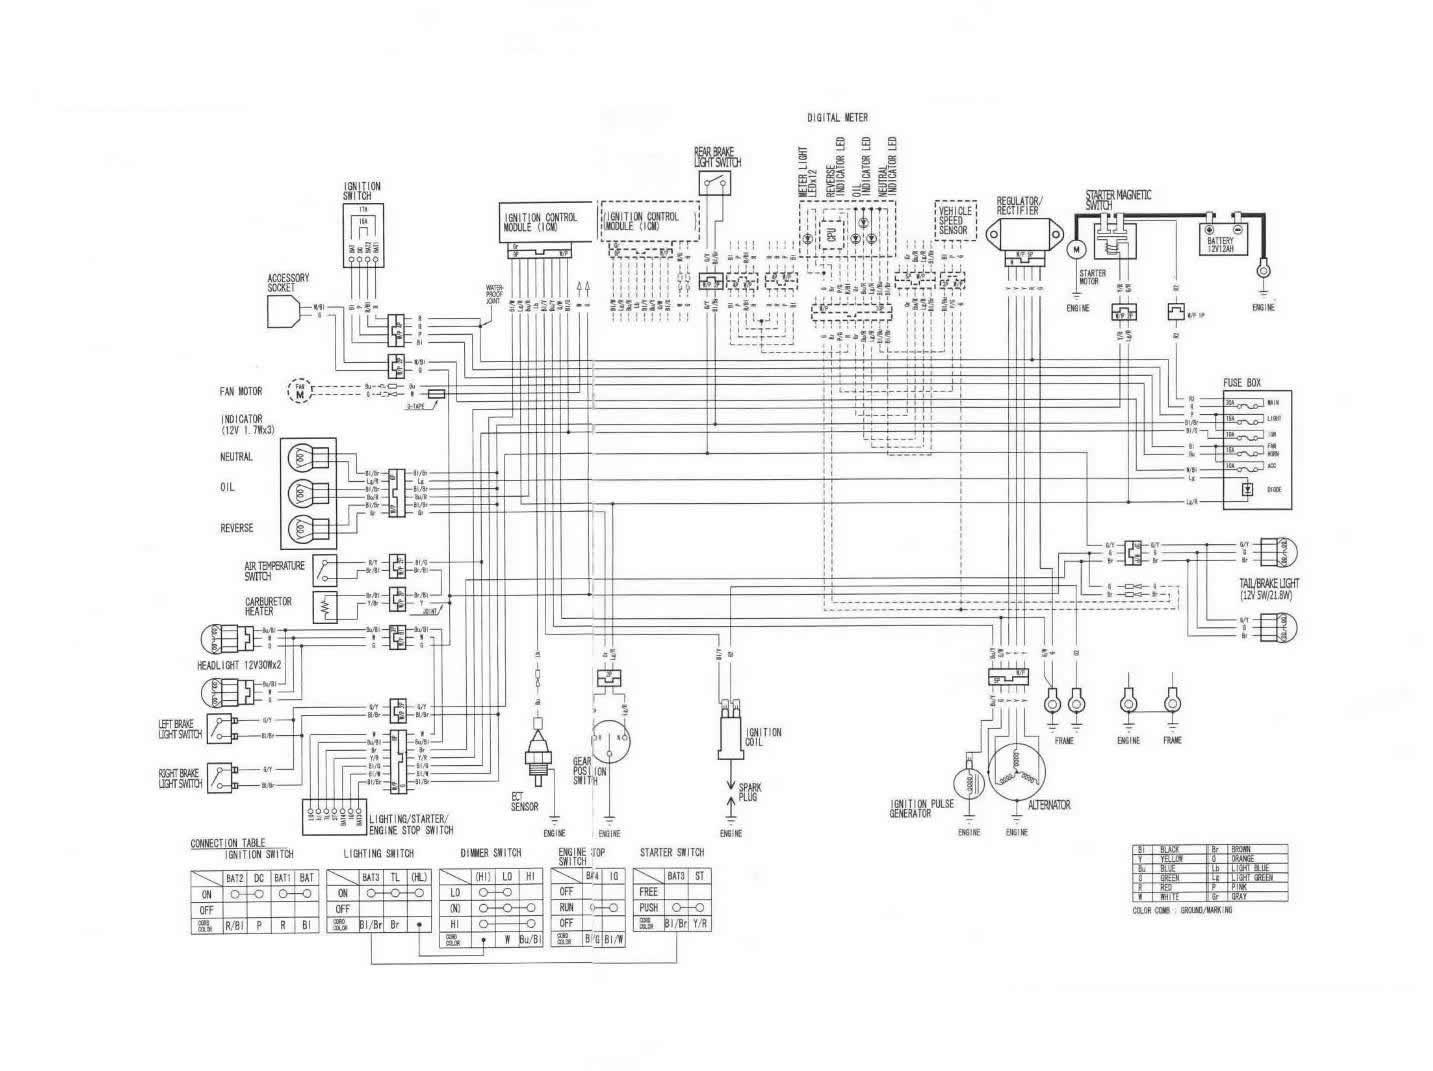 Ktm 520 Engine Diagram | Wiring Liry Ktm Wiring Diagram Free Picture Schematic on honda wiring diagram, beta wiring diagram, ajs wiring diagram, mercury wiring diagram, husaberg wiring diagram, international wiring diagram, kawasaki wiring diagram, dodge wiring diagram, nissan wiring diagram, ossa wiring diagram, garelli wiring diagram, bajaj wiring diagram, naza wiring diagram, kia wiring diagram, tomos wiring diagram, norton wiring diagram, cf moto wiring diagram, mitsubishi wiring diagram, thor wiring diagram, ariel wiring diagram,